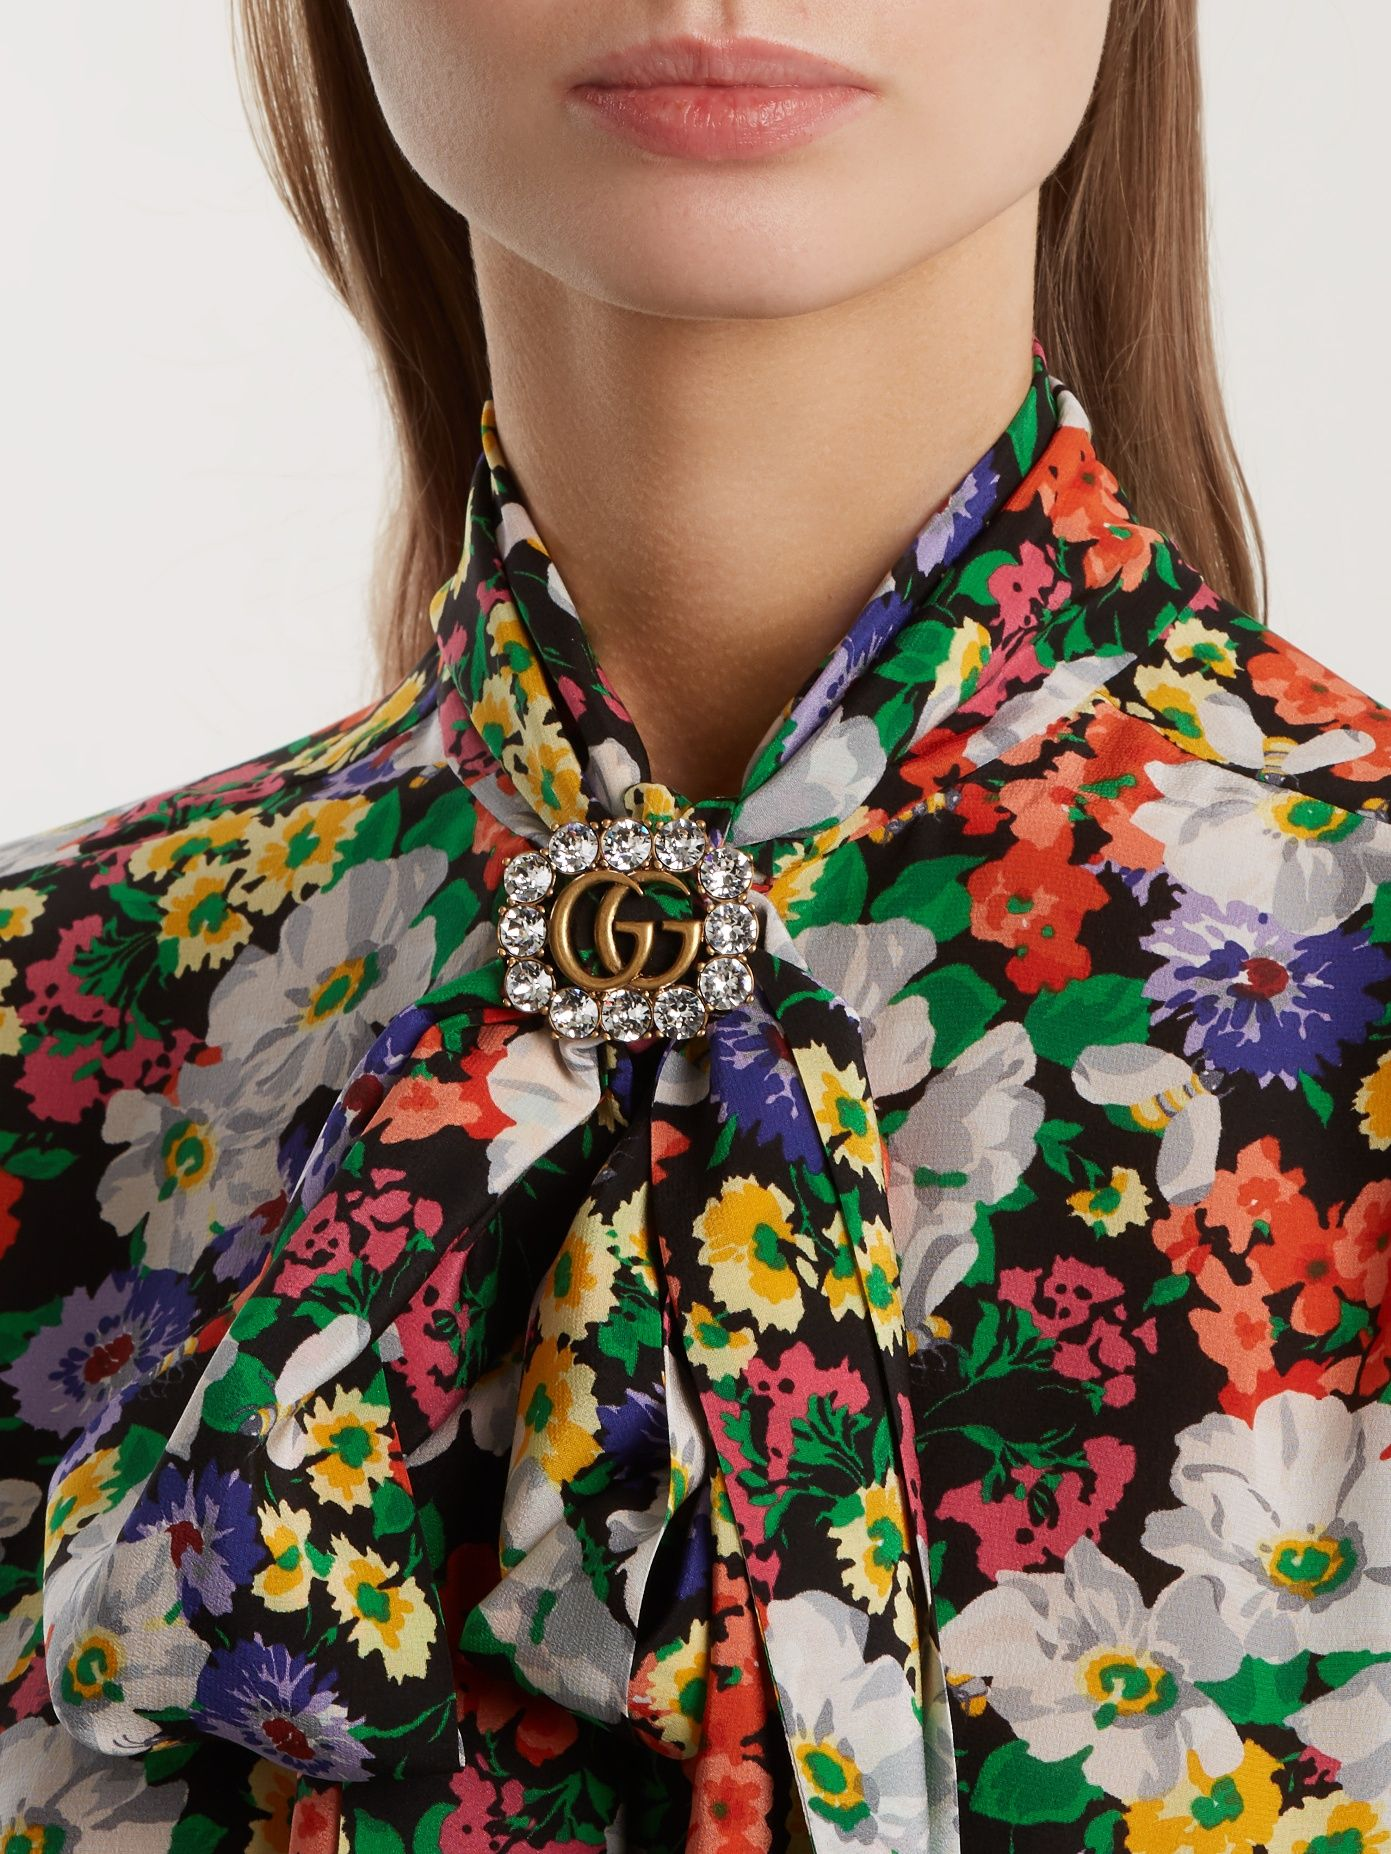 dfc4c93e100 Click here to buy Gucci Crystal-embellished GG brooch at MATCHESFASHION.COM